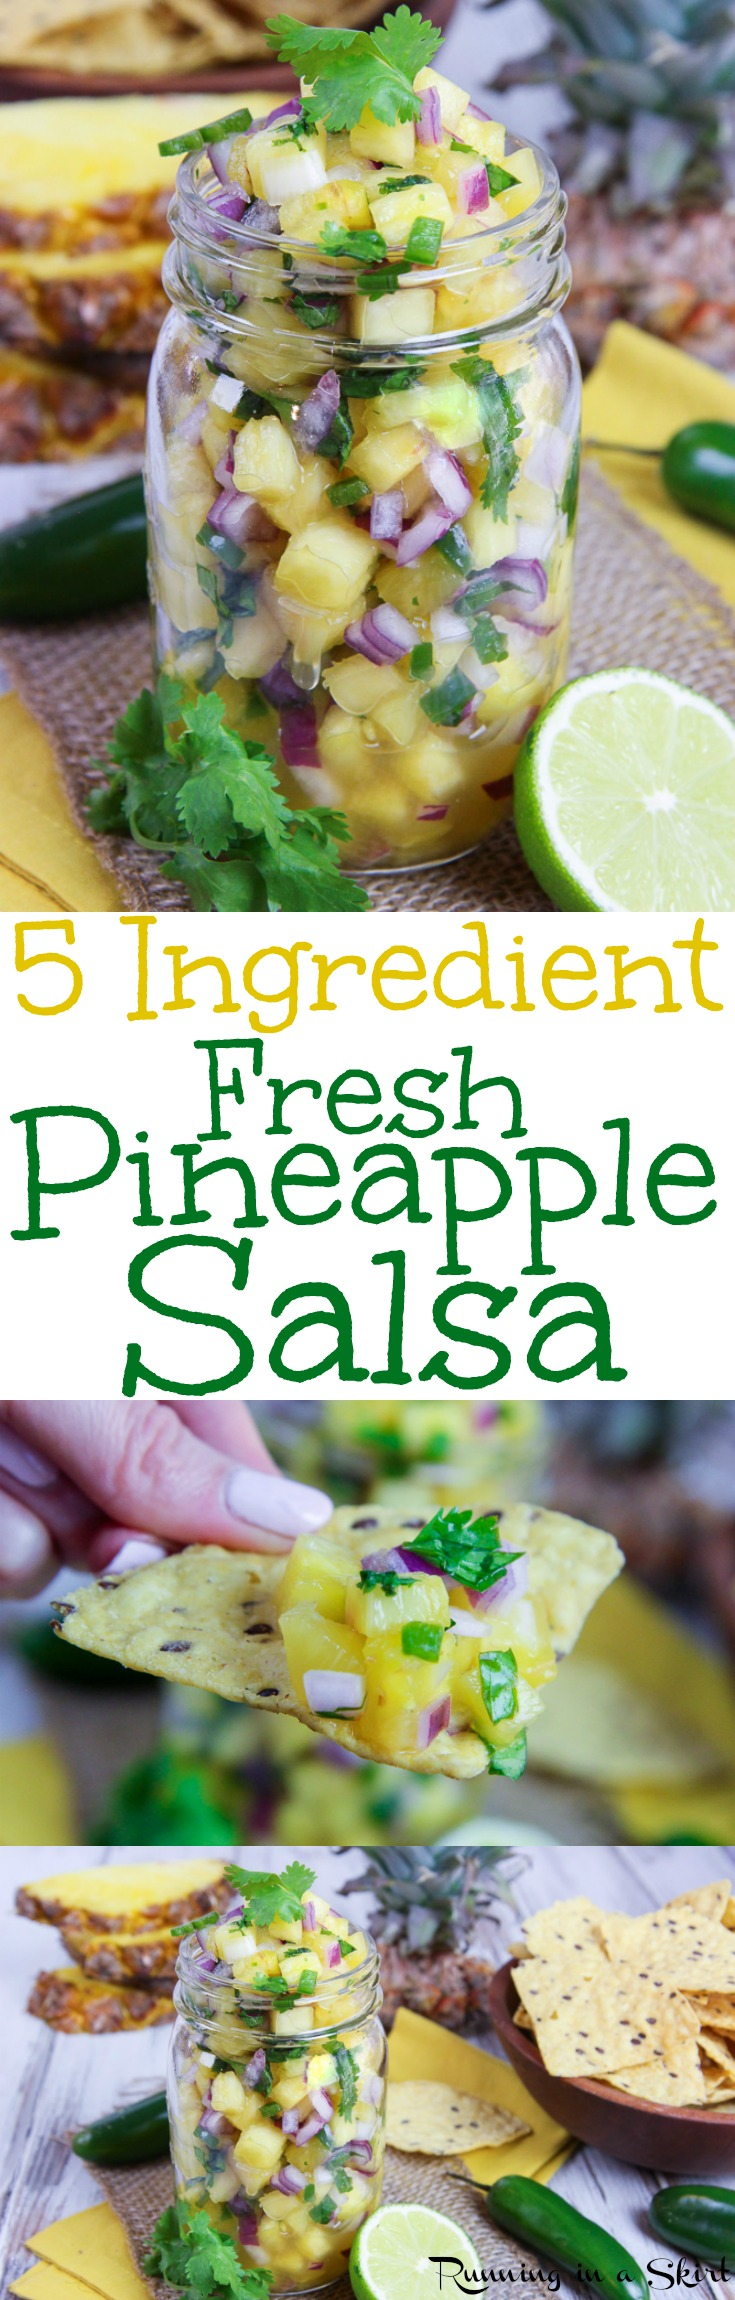 5 Ingredient Fresh Pineapple Salsa recipe - Perfect with tortilla chips or for fish tacos. This easy and simple Mexican dip is sweet, homemade and delicious. Great for any fish like salmon, tilapia, mahi mahi or tuna. No tomatoes! Vegan, Vegetarian & Gluten Free/ Running in a Skirt